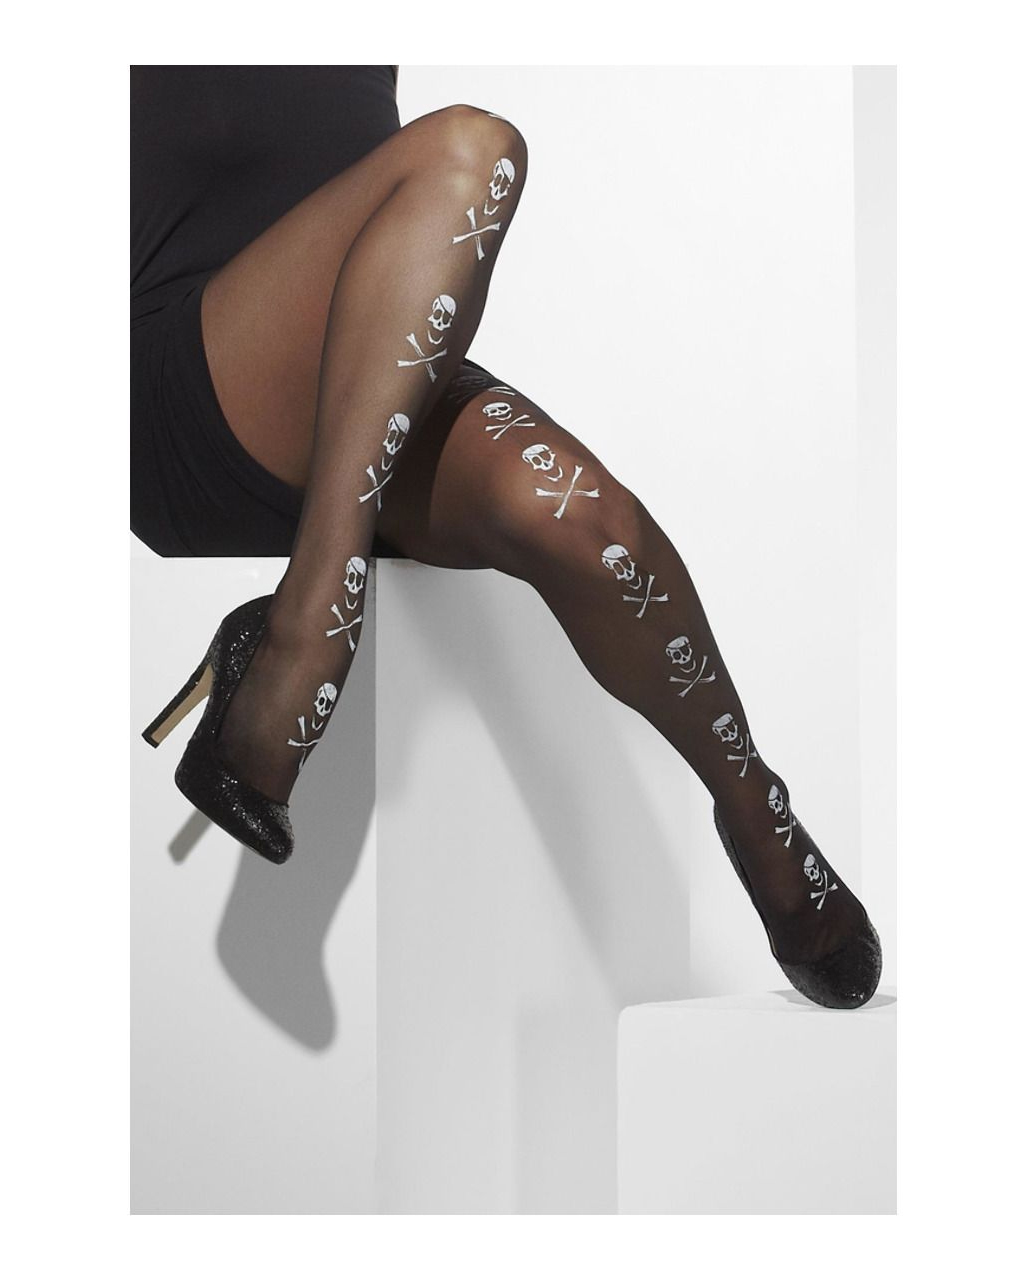 Nylon Thigh Highs w//Pirate Skull Print Black Dress Up Adult Costume Accessory